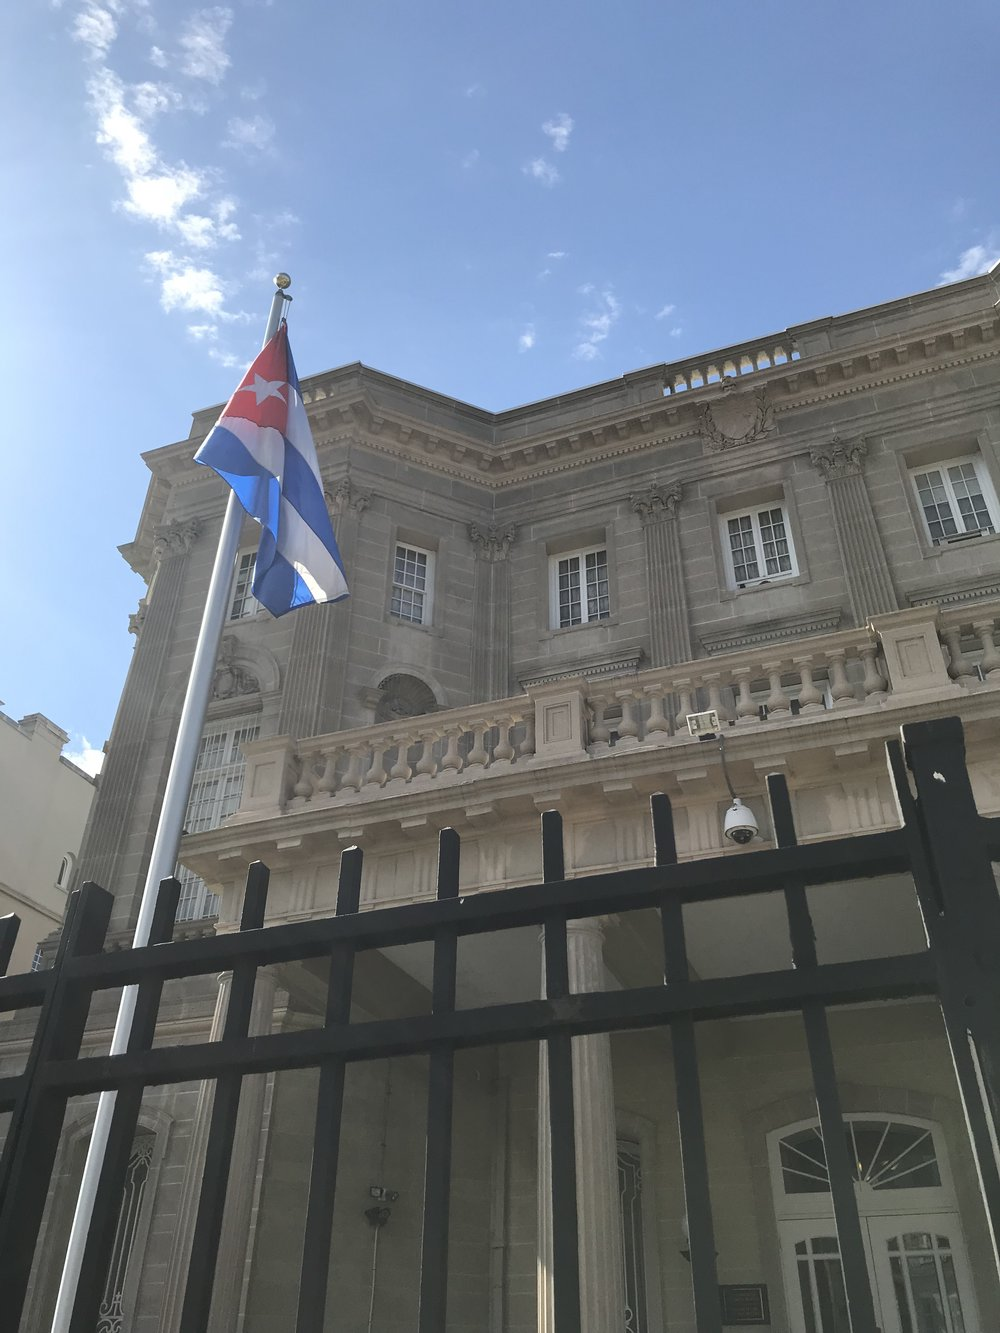 The Embassy of Cuba.